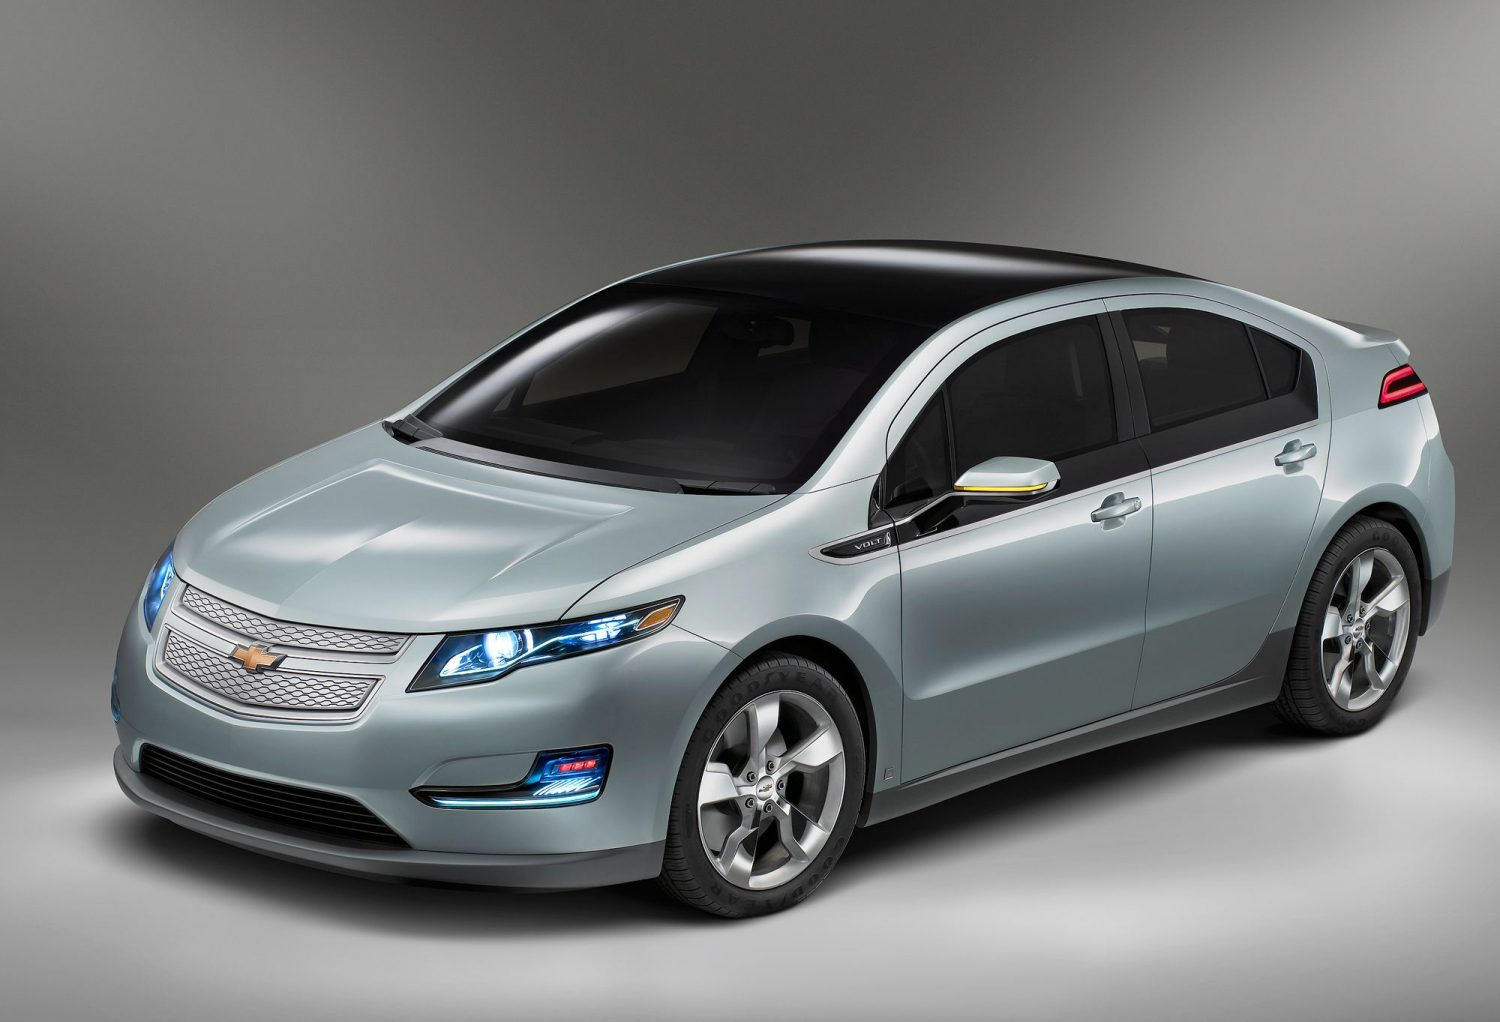 The 2011 Chevy Volt is Perfect for Phoenix Valley Residents